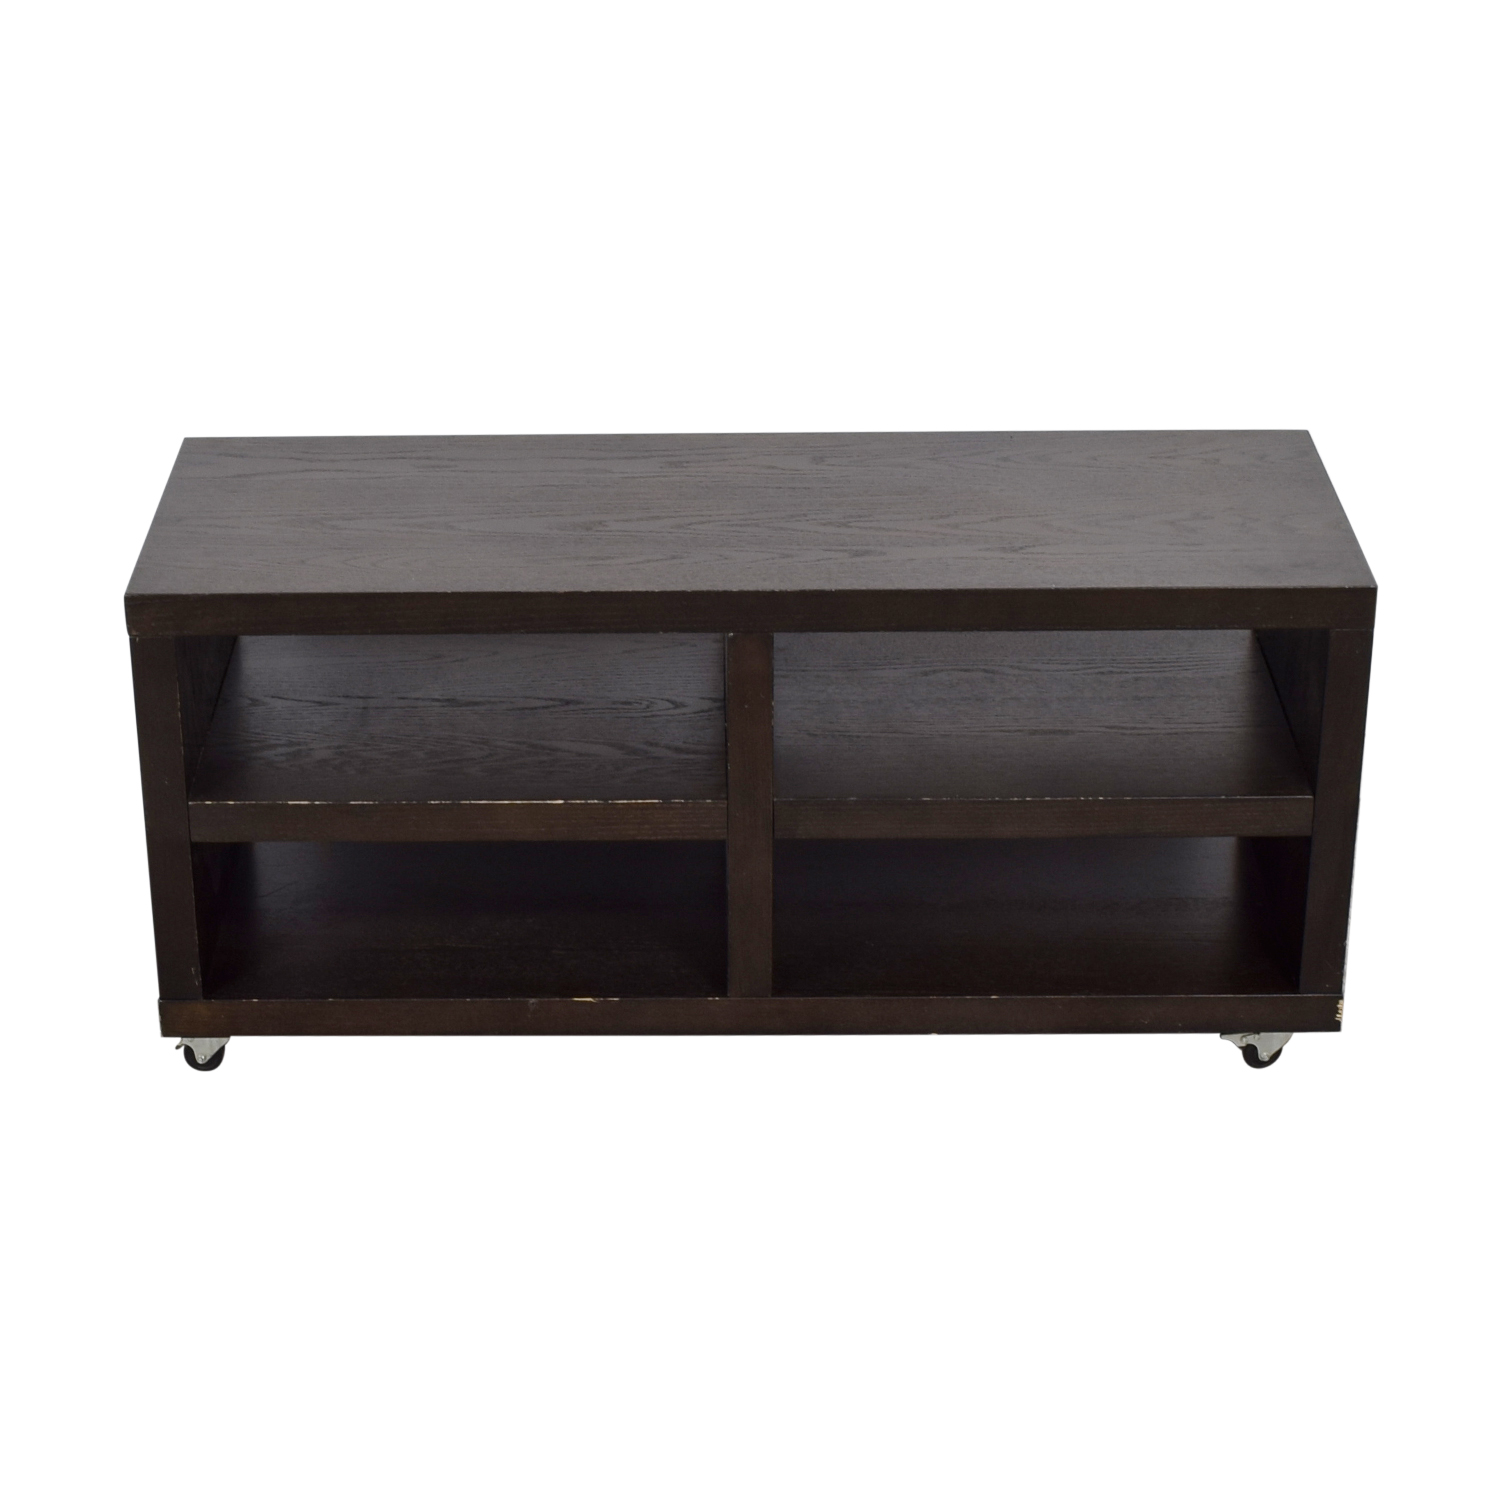 West Elm West Elm Wood TV Stand on Casters nj